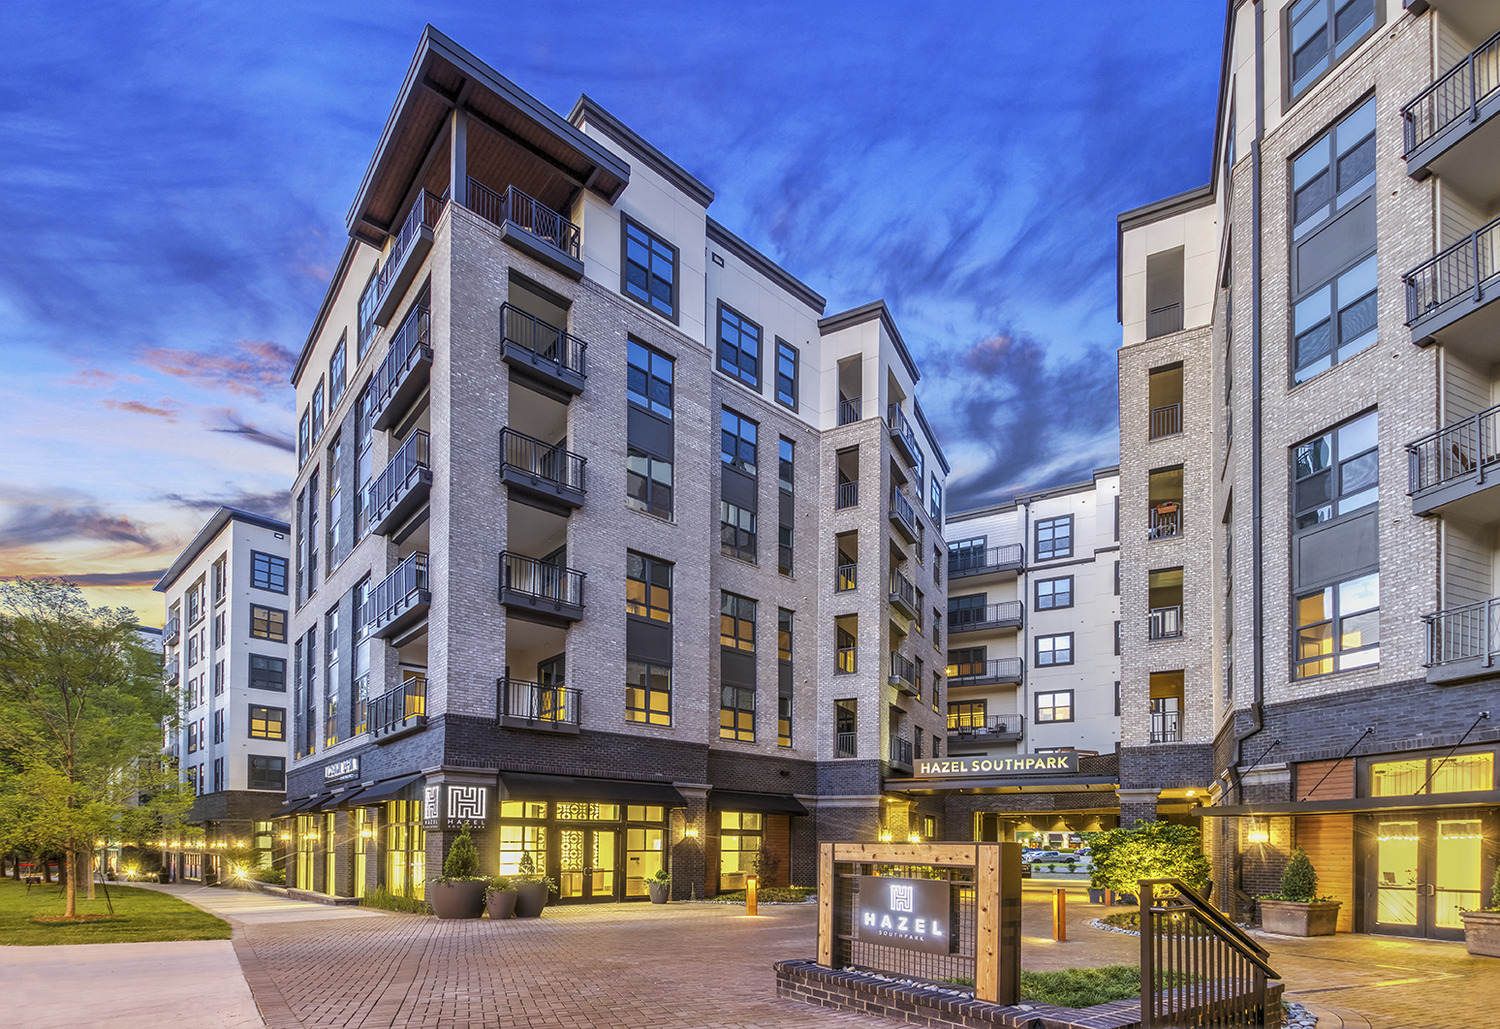 CBG builds Hazel SouthPark, a 203-Unit Luxury Community with Five-Story Parking Garage in Charlotte, NC